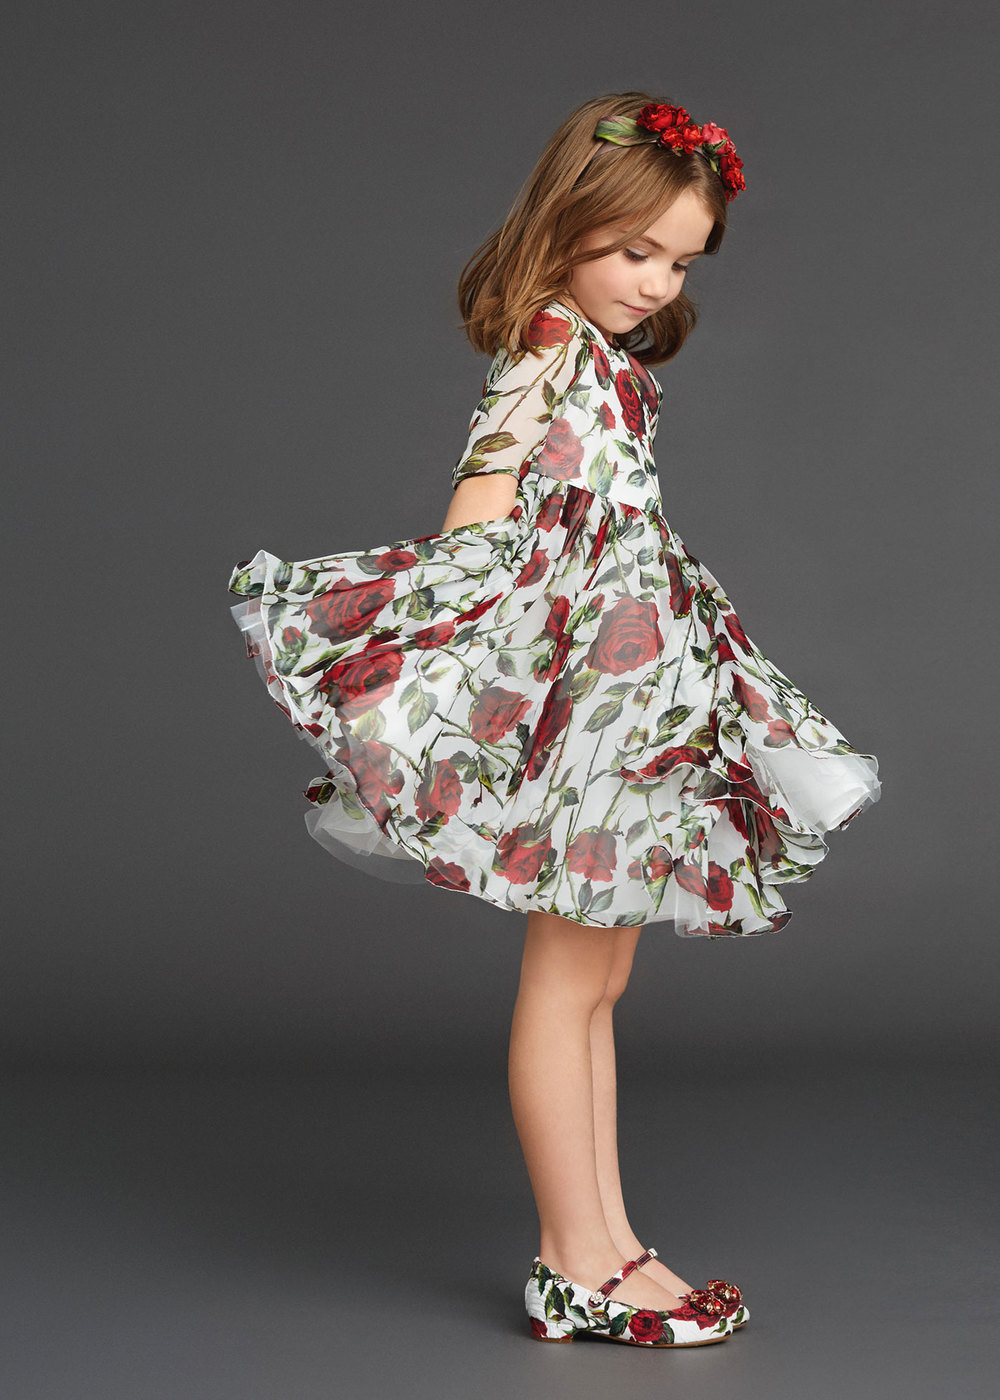 dolce-and-gabbana-winter-2016-child-collection-15-zoom.jpg